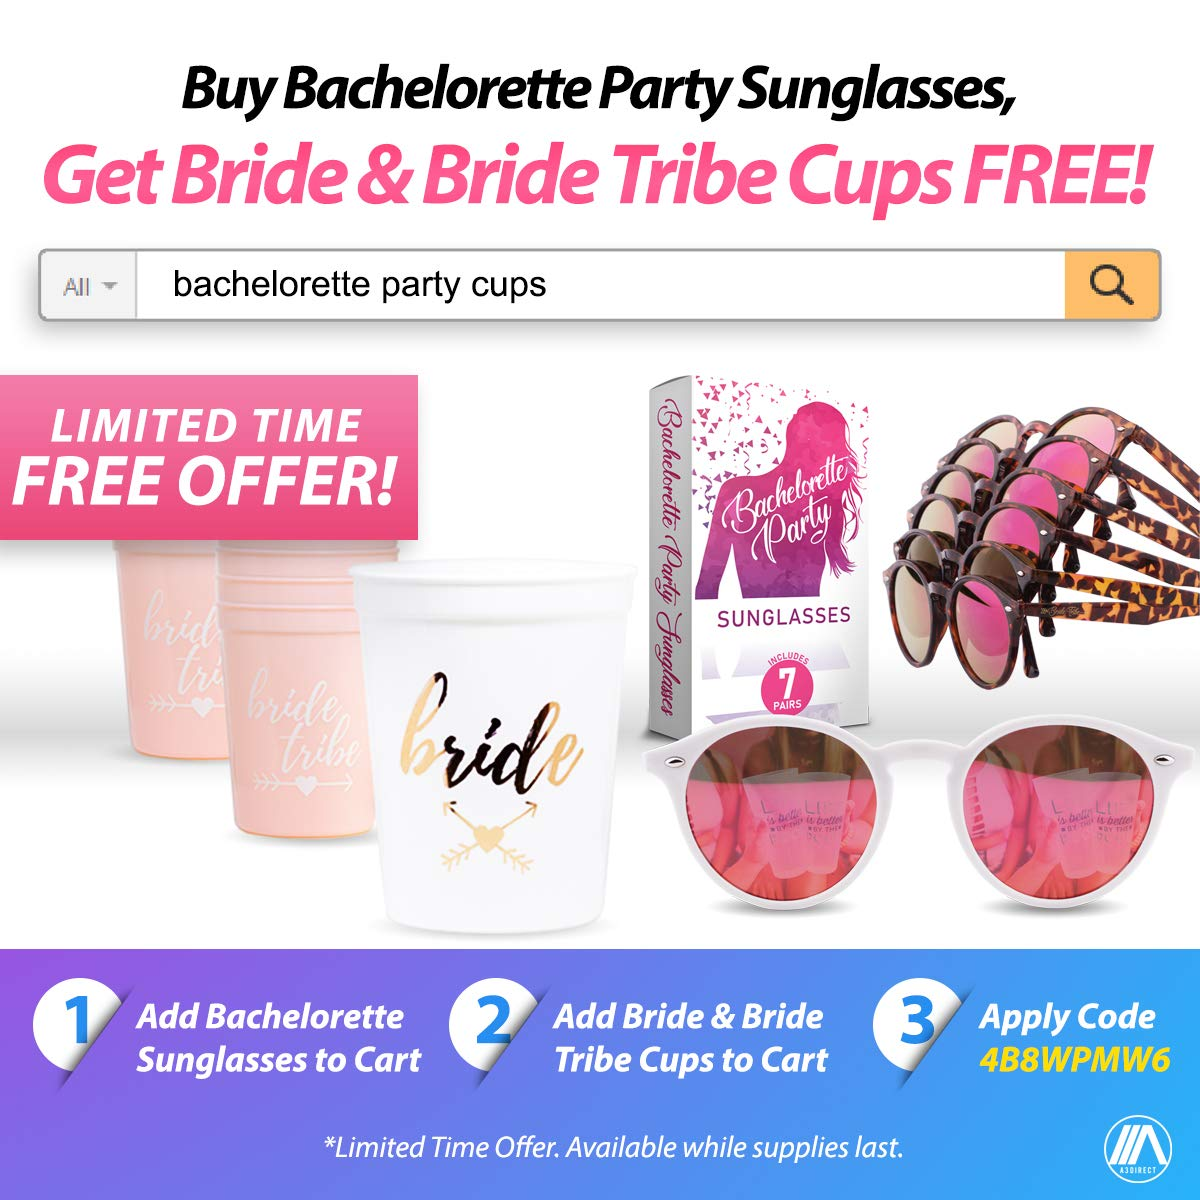 Bachelorette Party Sunglasses for Team Bride Perfect Bridesmaids Favors 7 Bride Tribe Mirrored Pink Lens Glasses Instagram Worthy Bachelorette Party Decorations//Supplies A3 DIRECT Bridal Shower Ideas